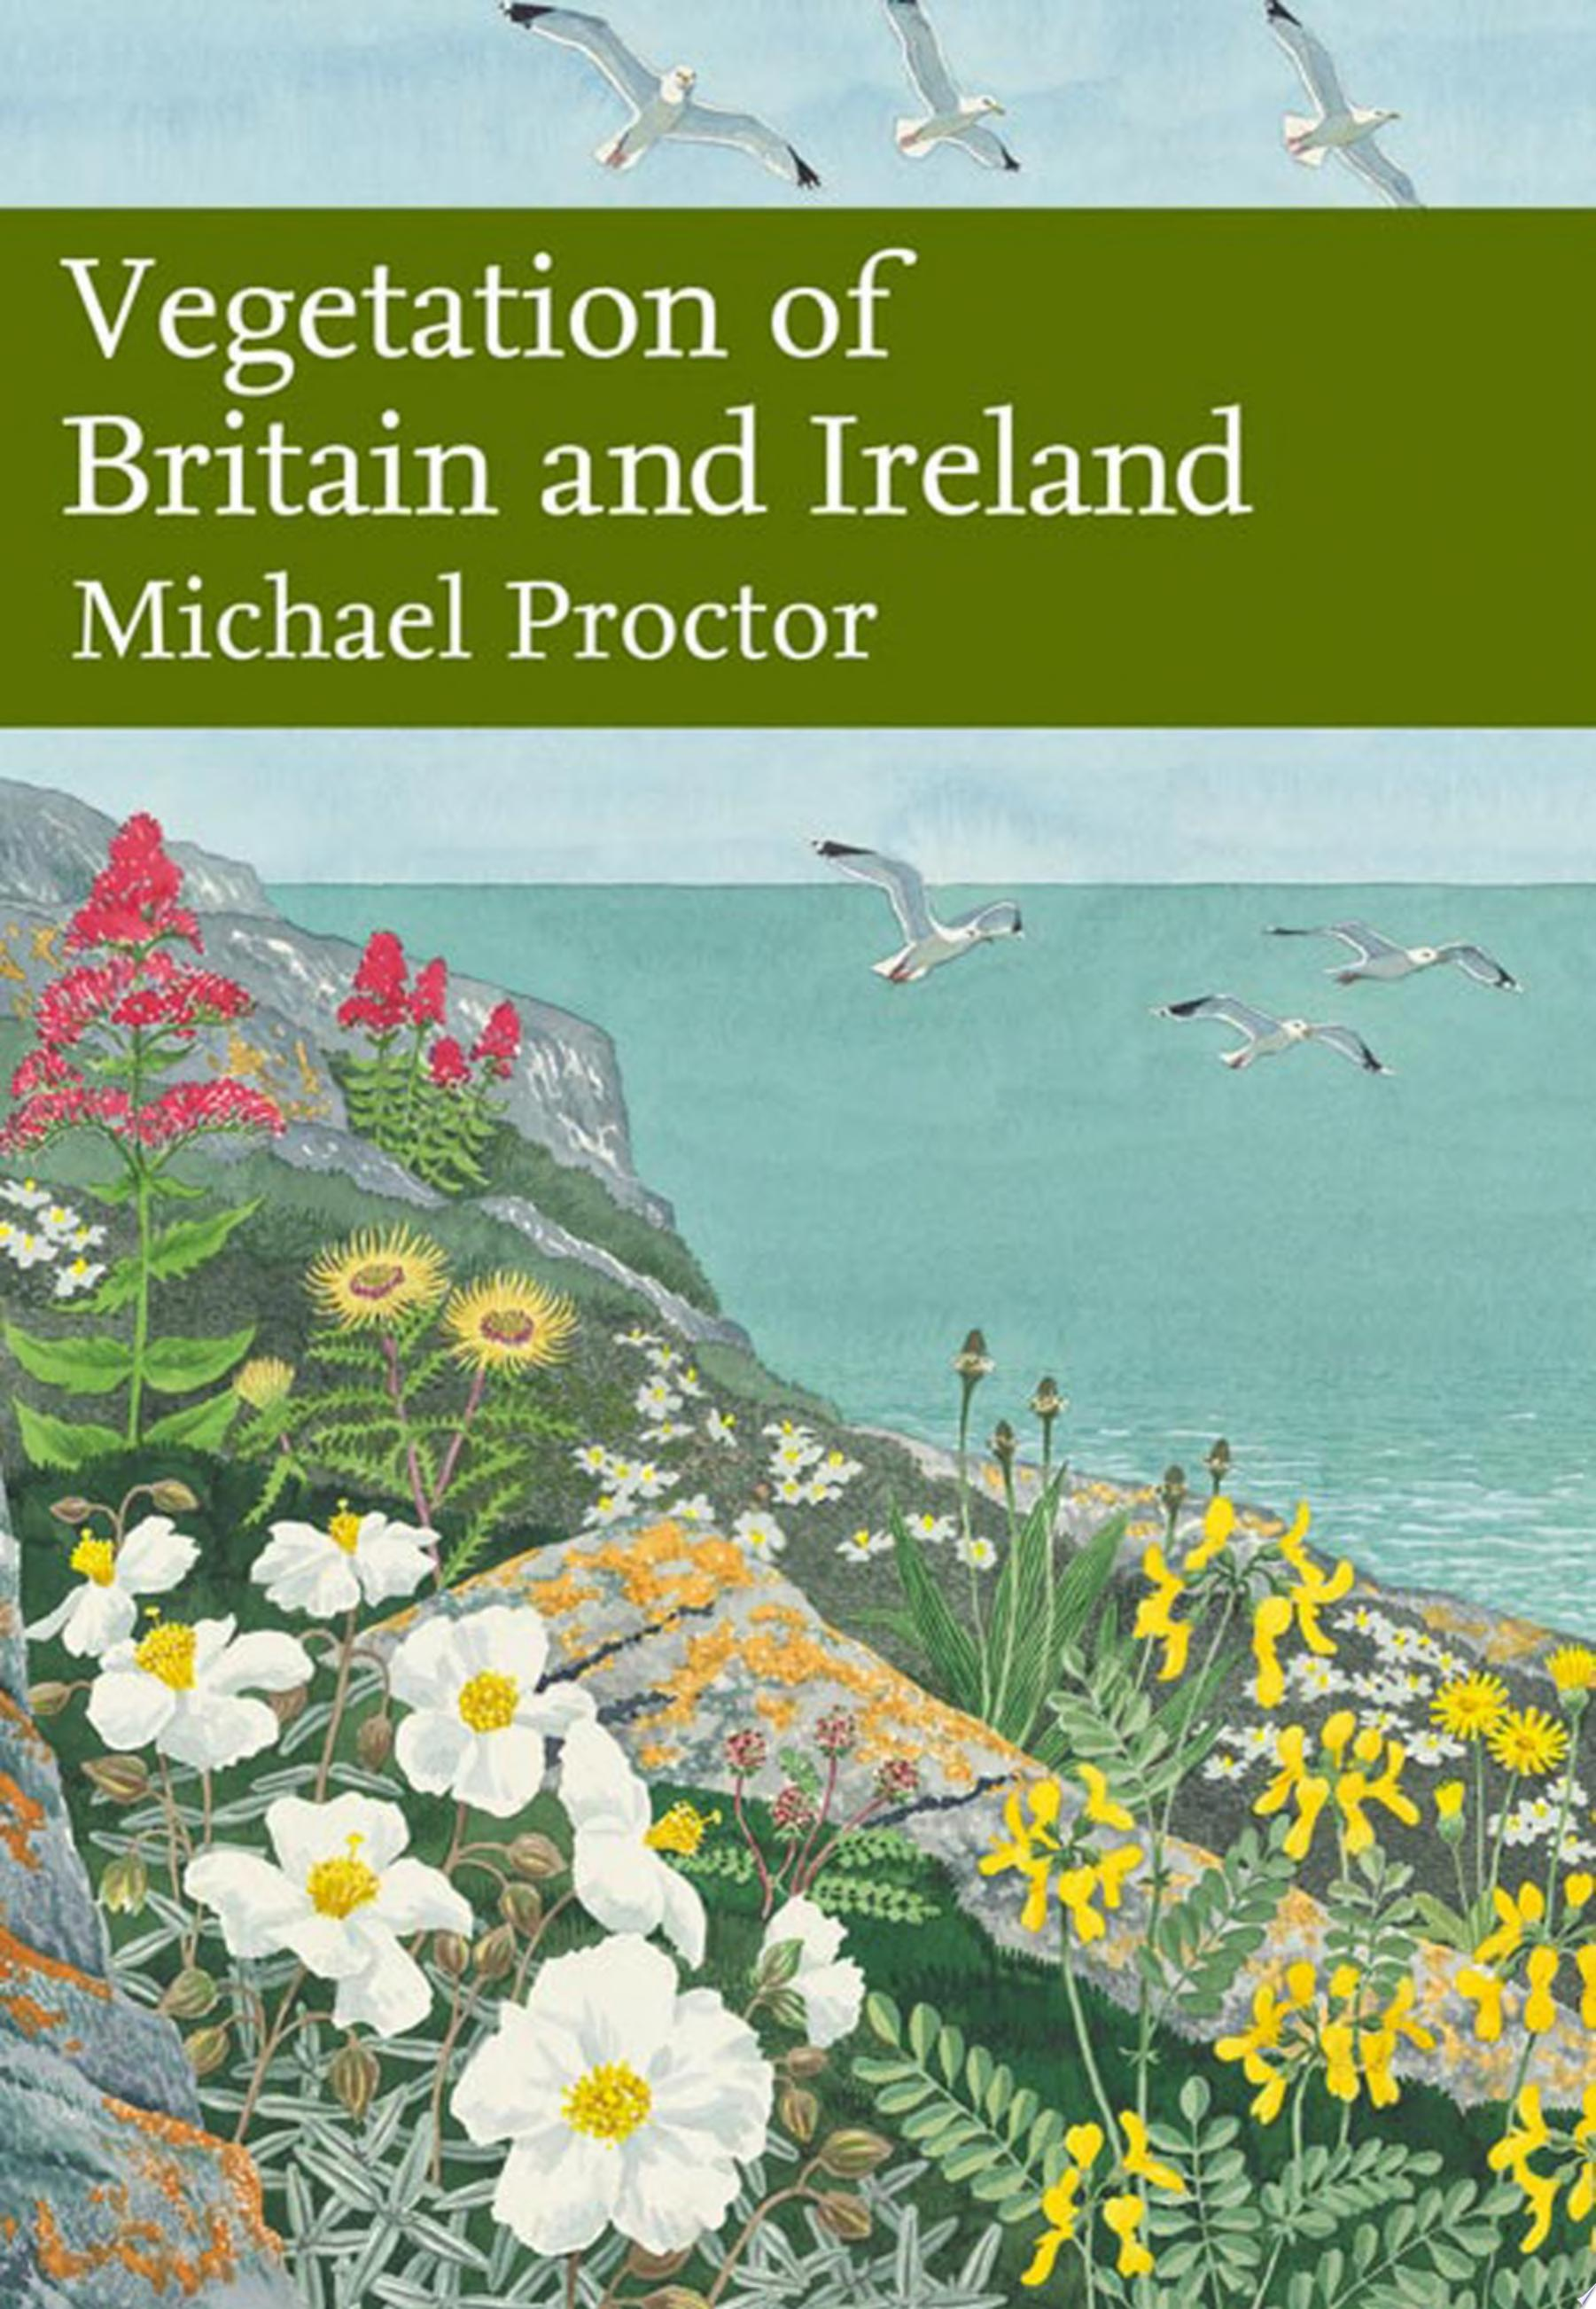 Vegetation of Britain and Ireland  Collins New Naturalist Library  Book 122